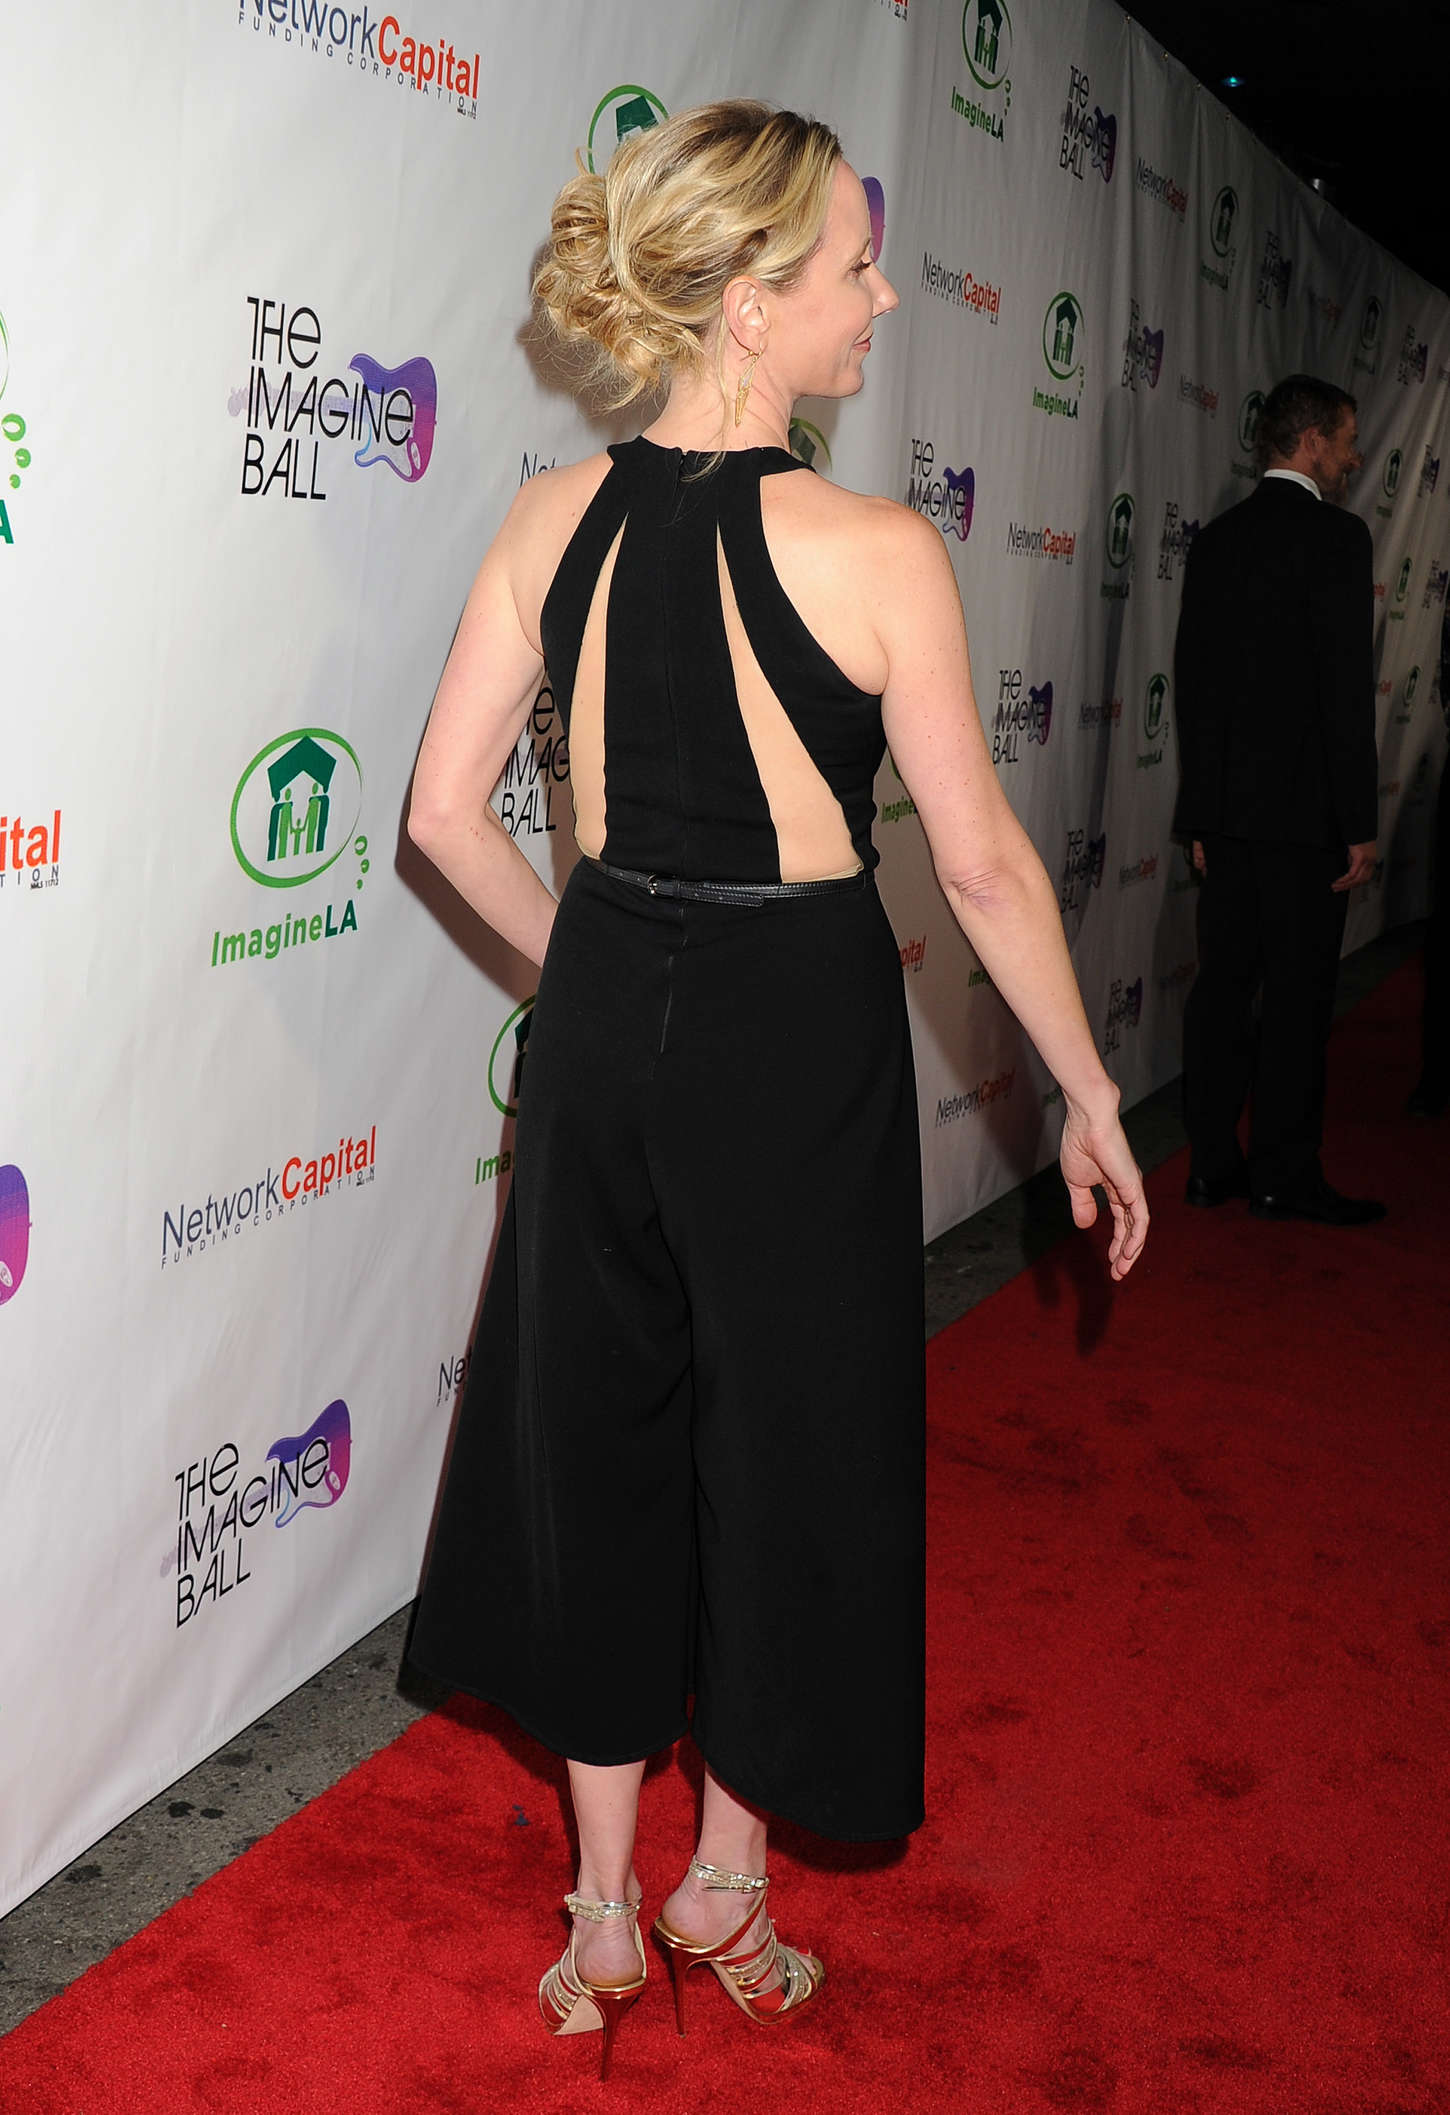 Anne Heche The Imagine Ball in West Hollywood